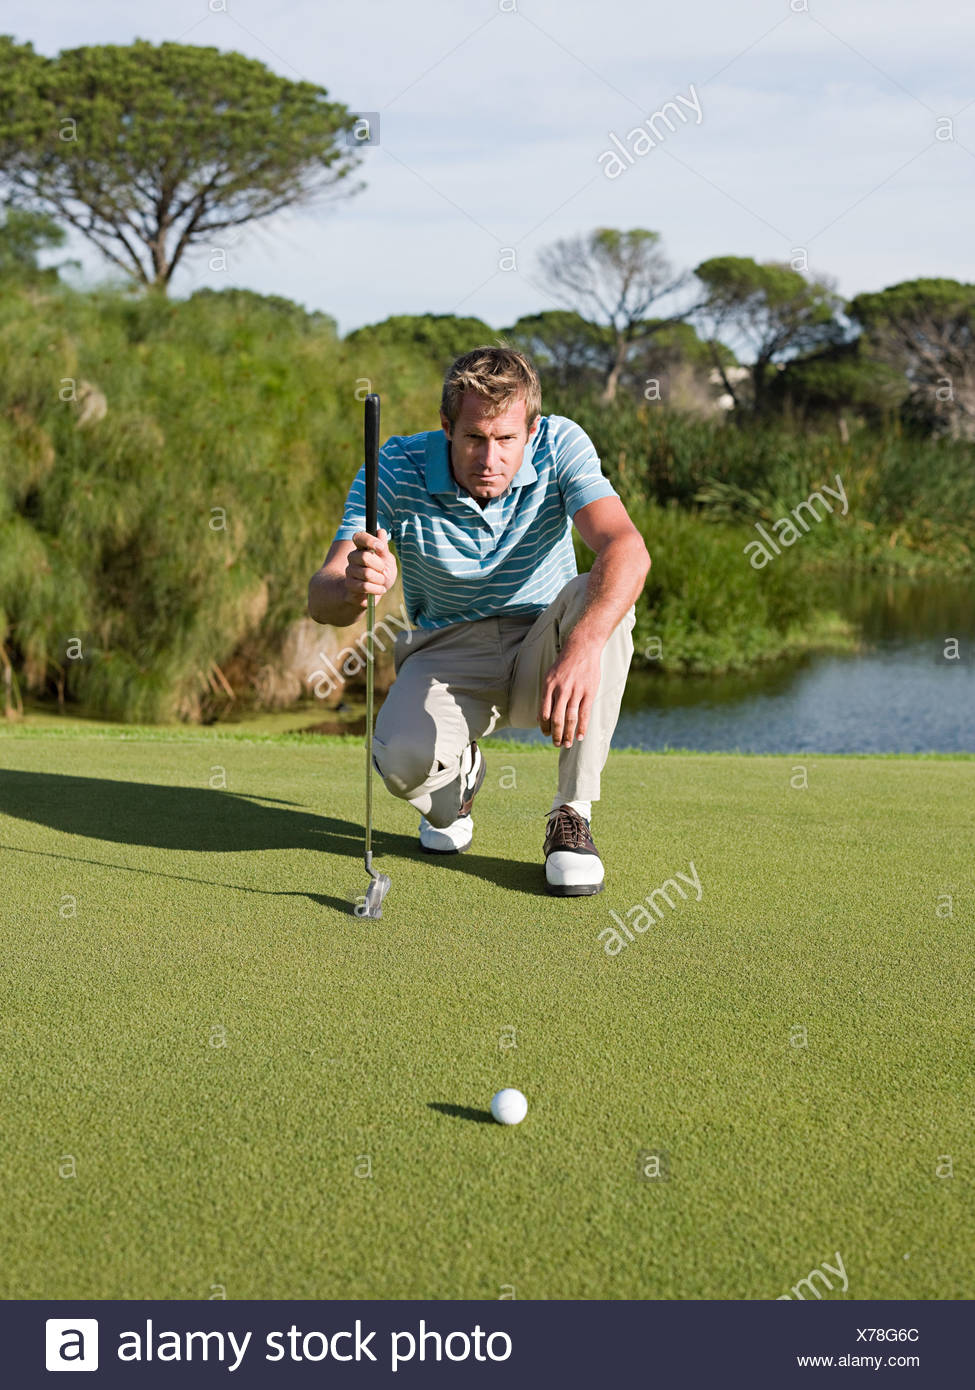 Man playing golf, on putting green - Stock Image